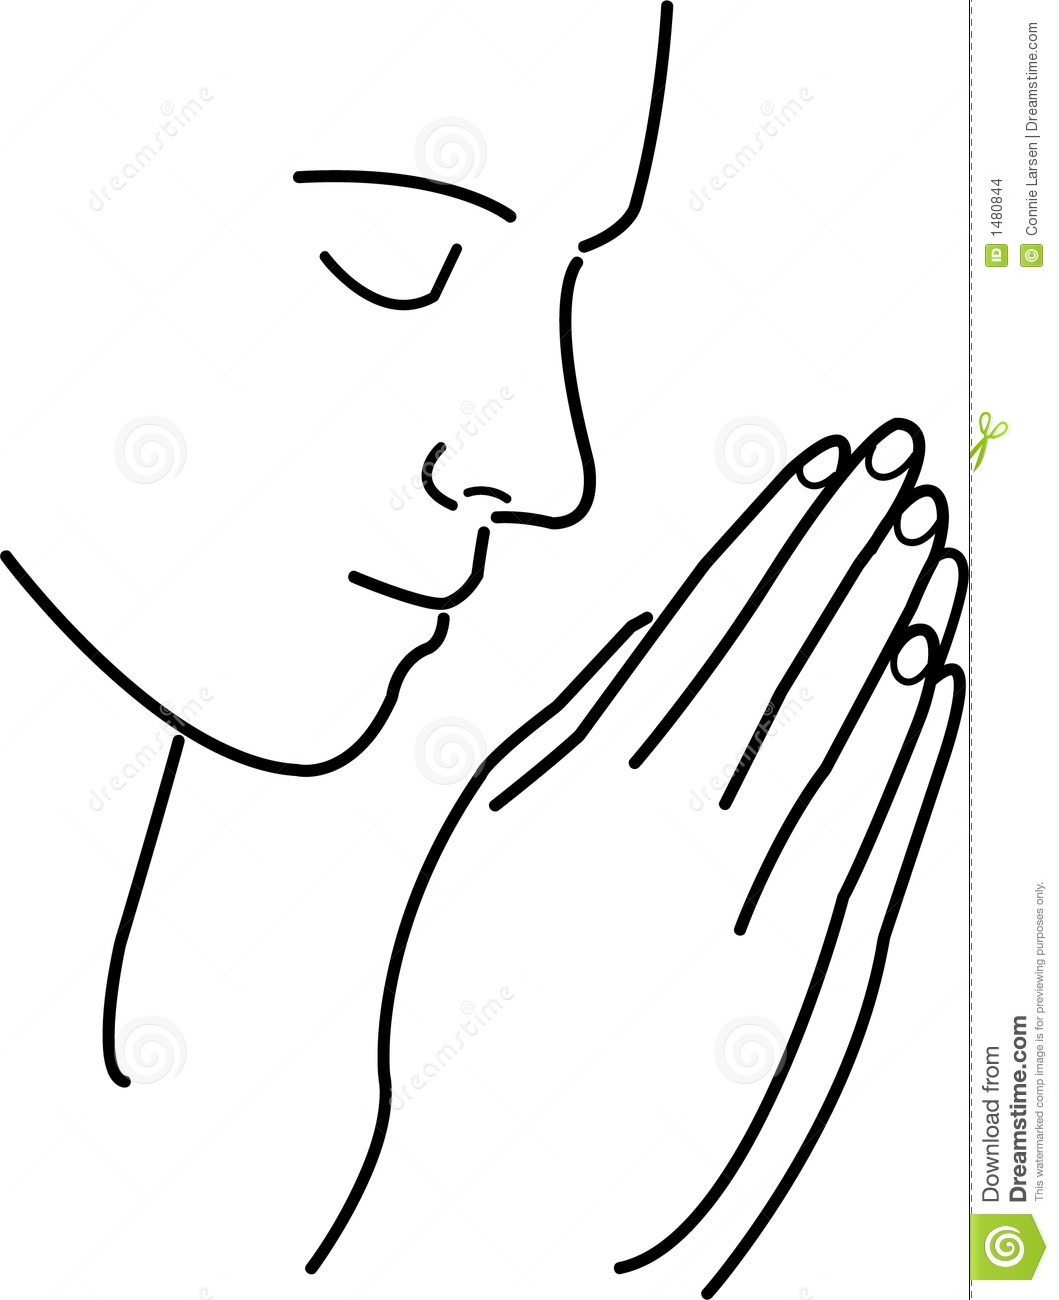 Simple but elegant illustration of a person in prayer, meditation or ...